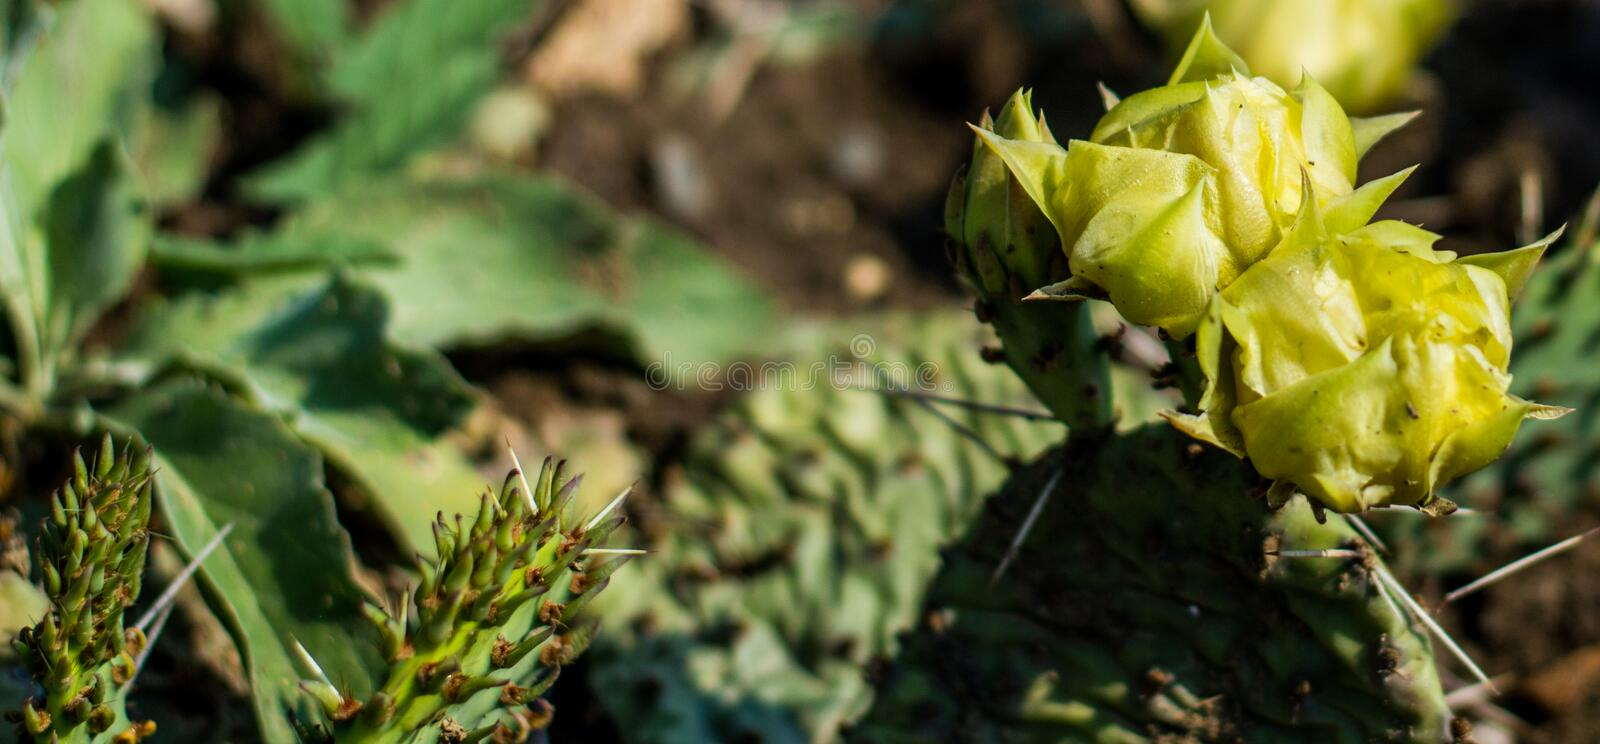 Cactus plant. Yellow cactus flower close up royalty free stock images